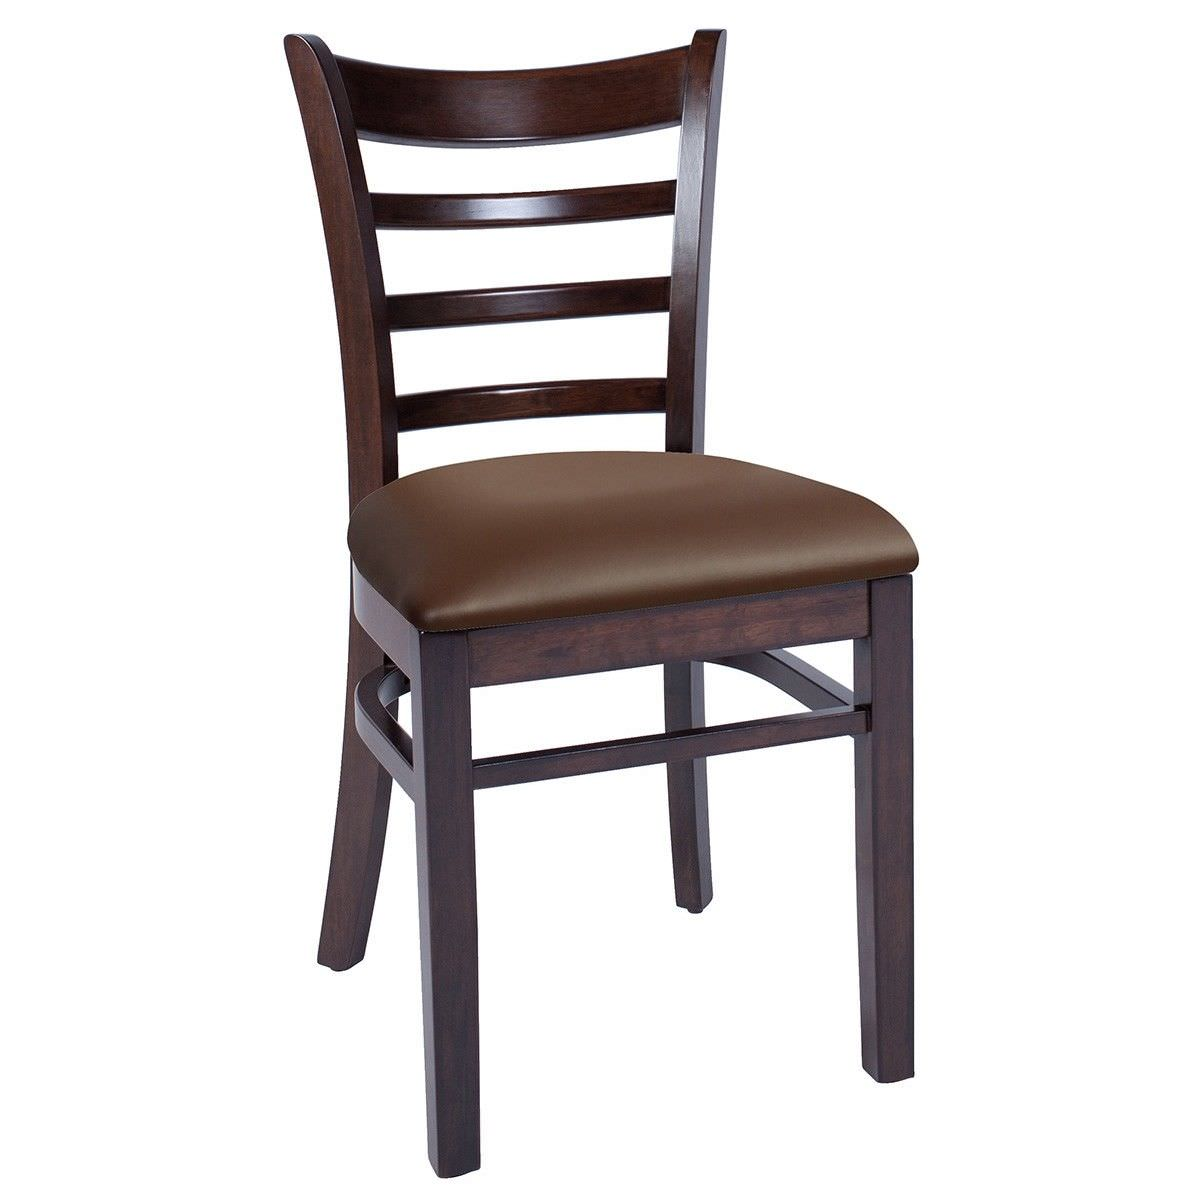 Mustang Commercial Grade Timber Chair with Vinyl Seat - Walnut